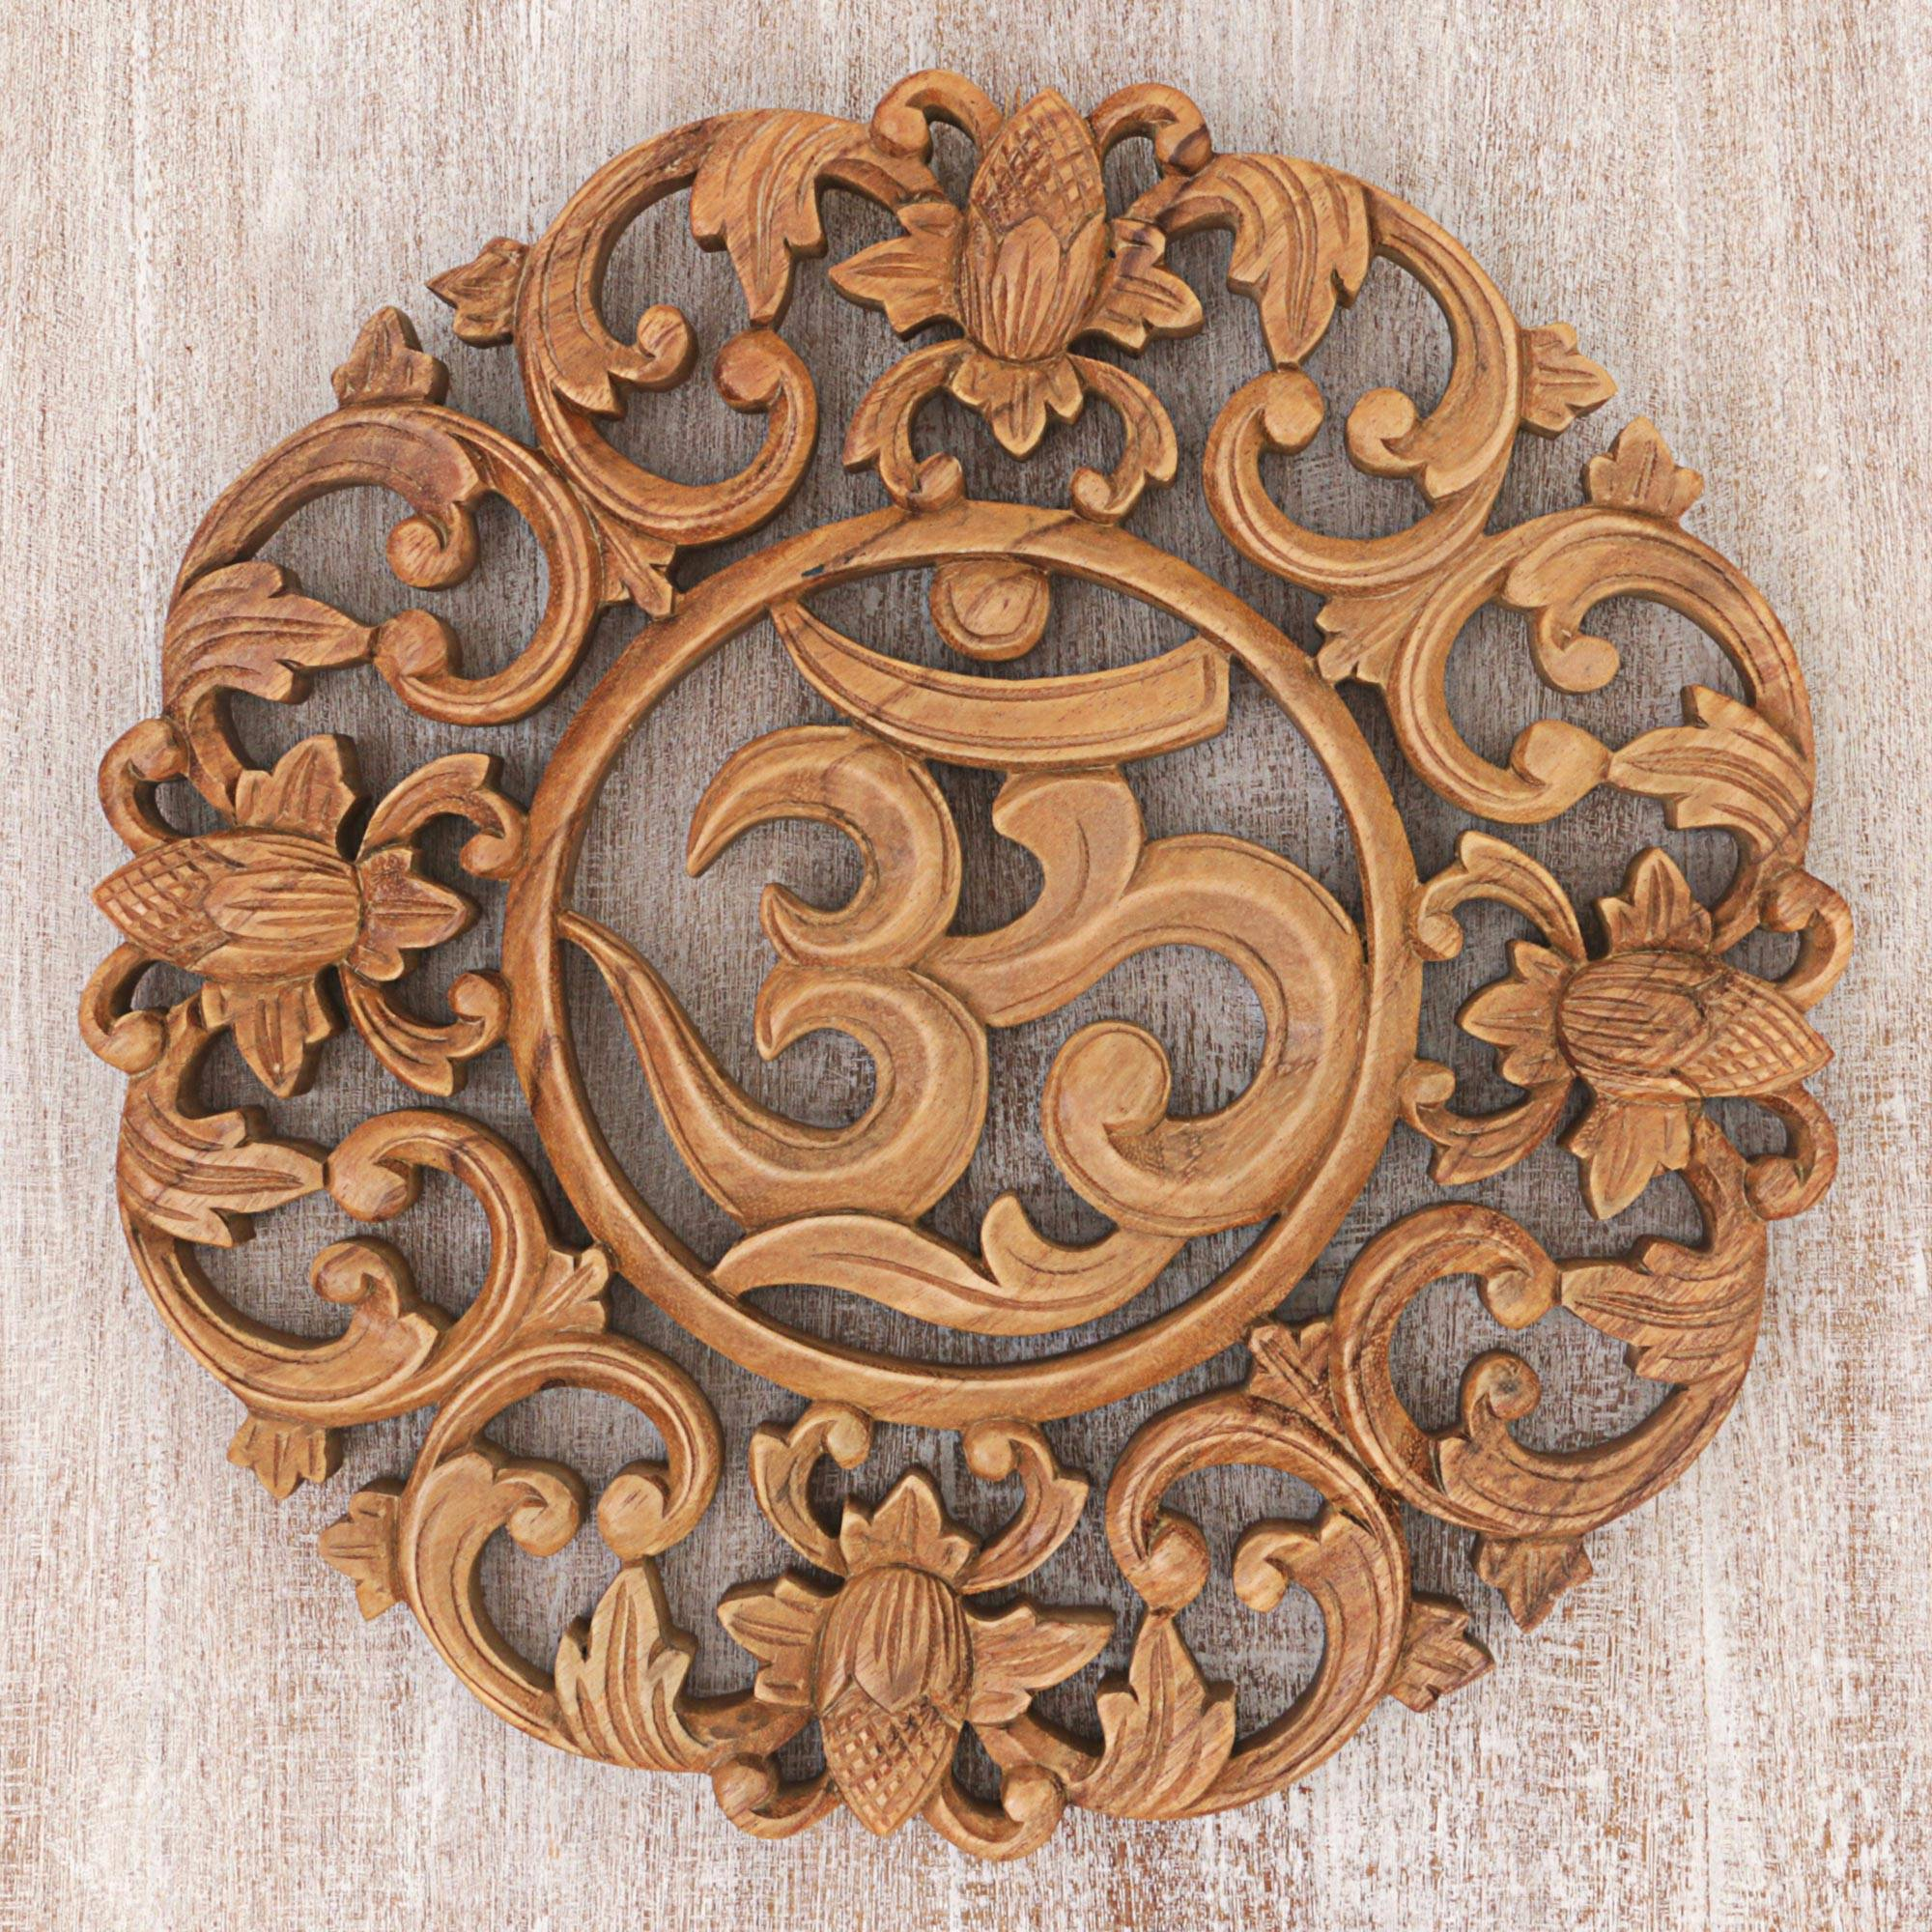 Wall Art In Your Home Flower Om Hand Made Wood Wall Relief Panel of Floral Om from Indonesia